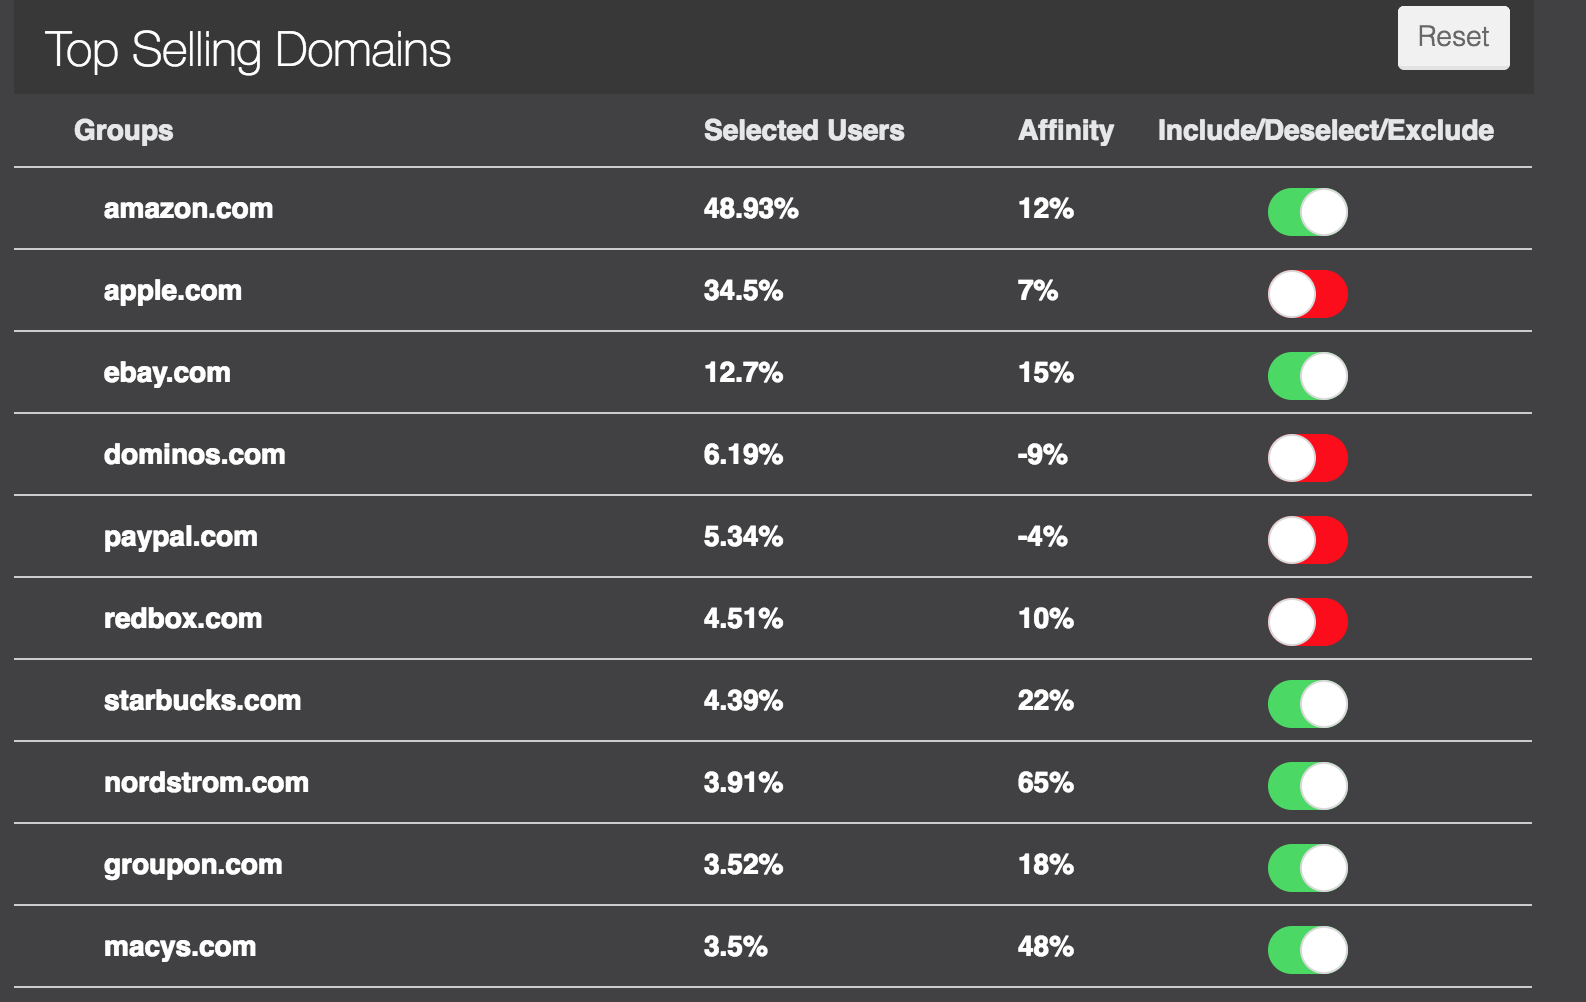 Top Selling Domains Top Insights